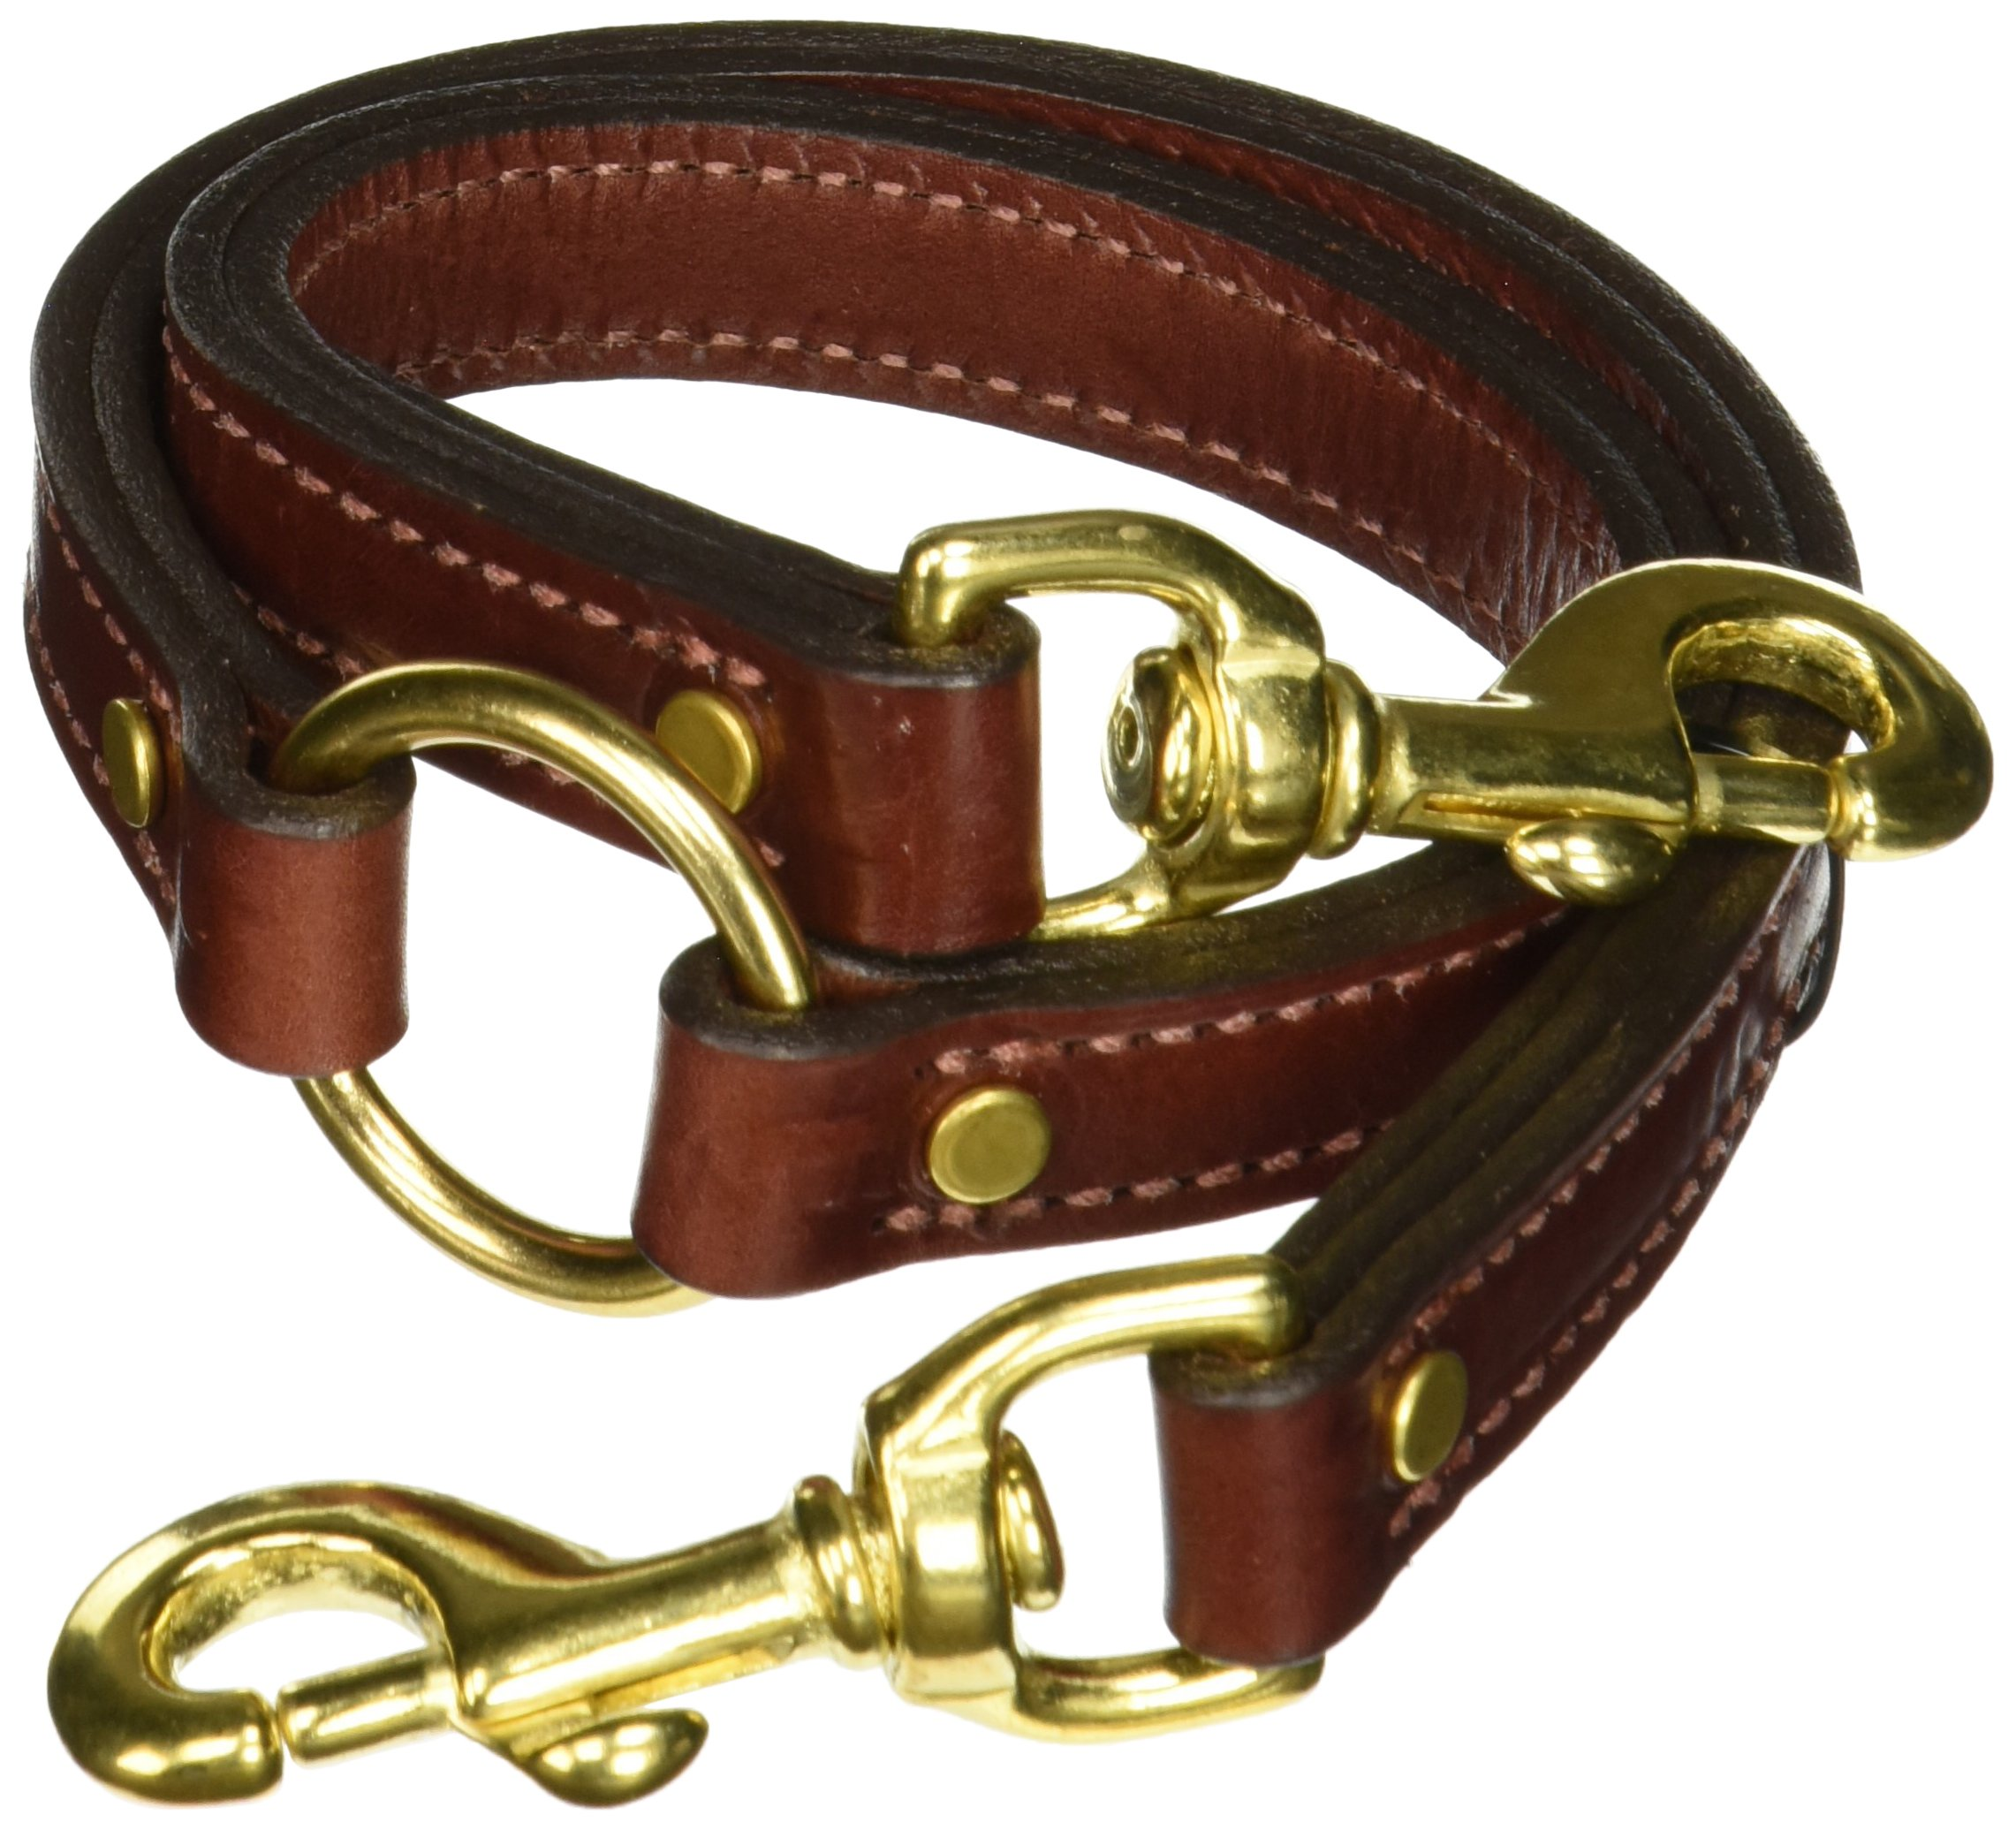 Mendota Products 10825 Pet Leather Two Dog Coupler Leash, 3/4'' x 25'', Chestnut by Mendota Products